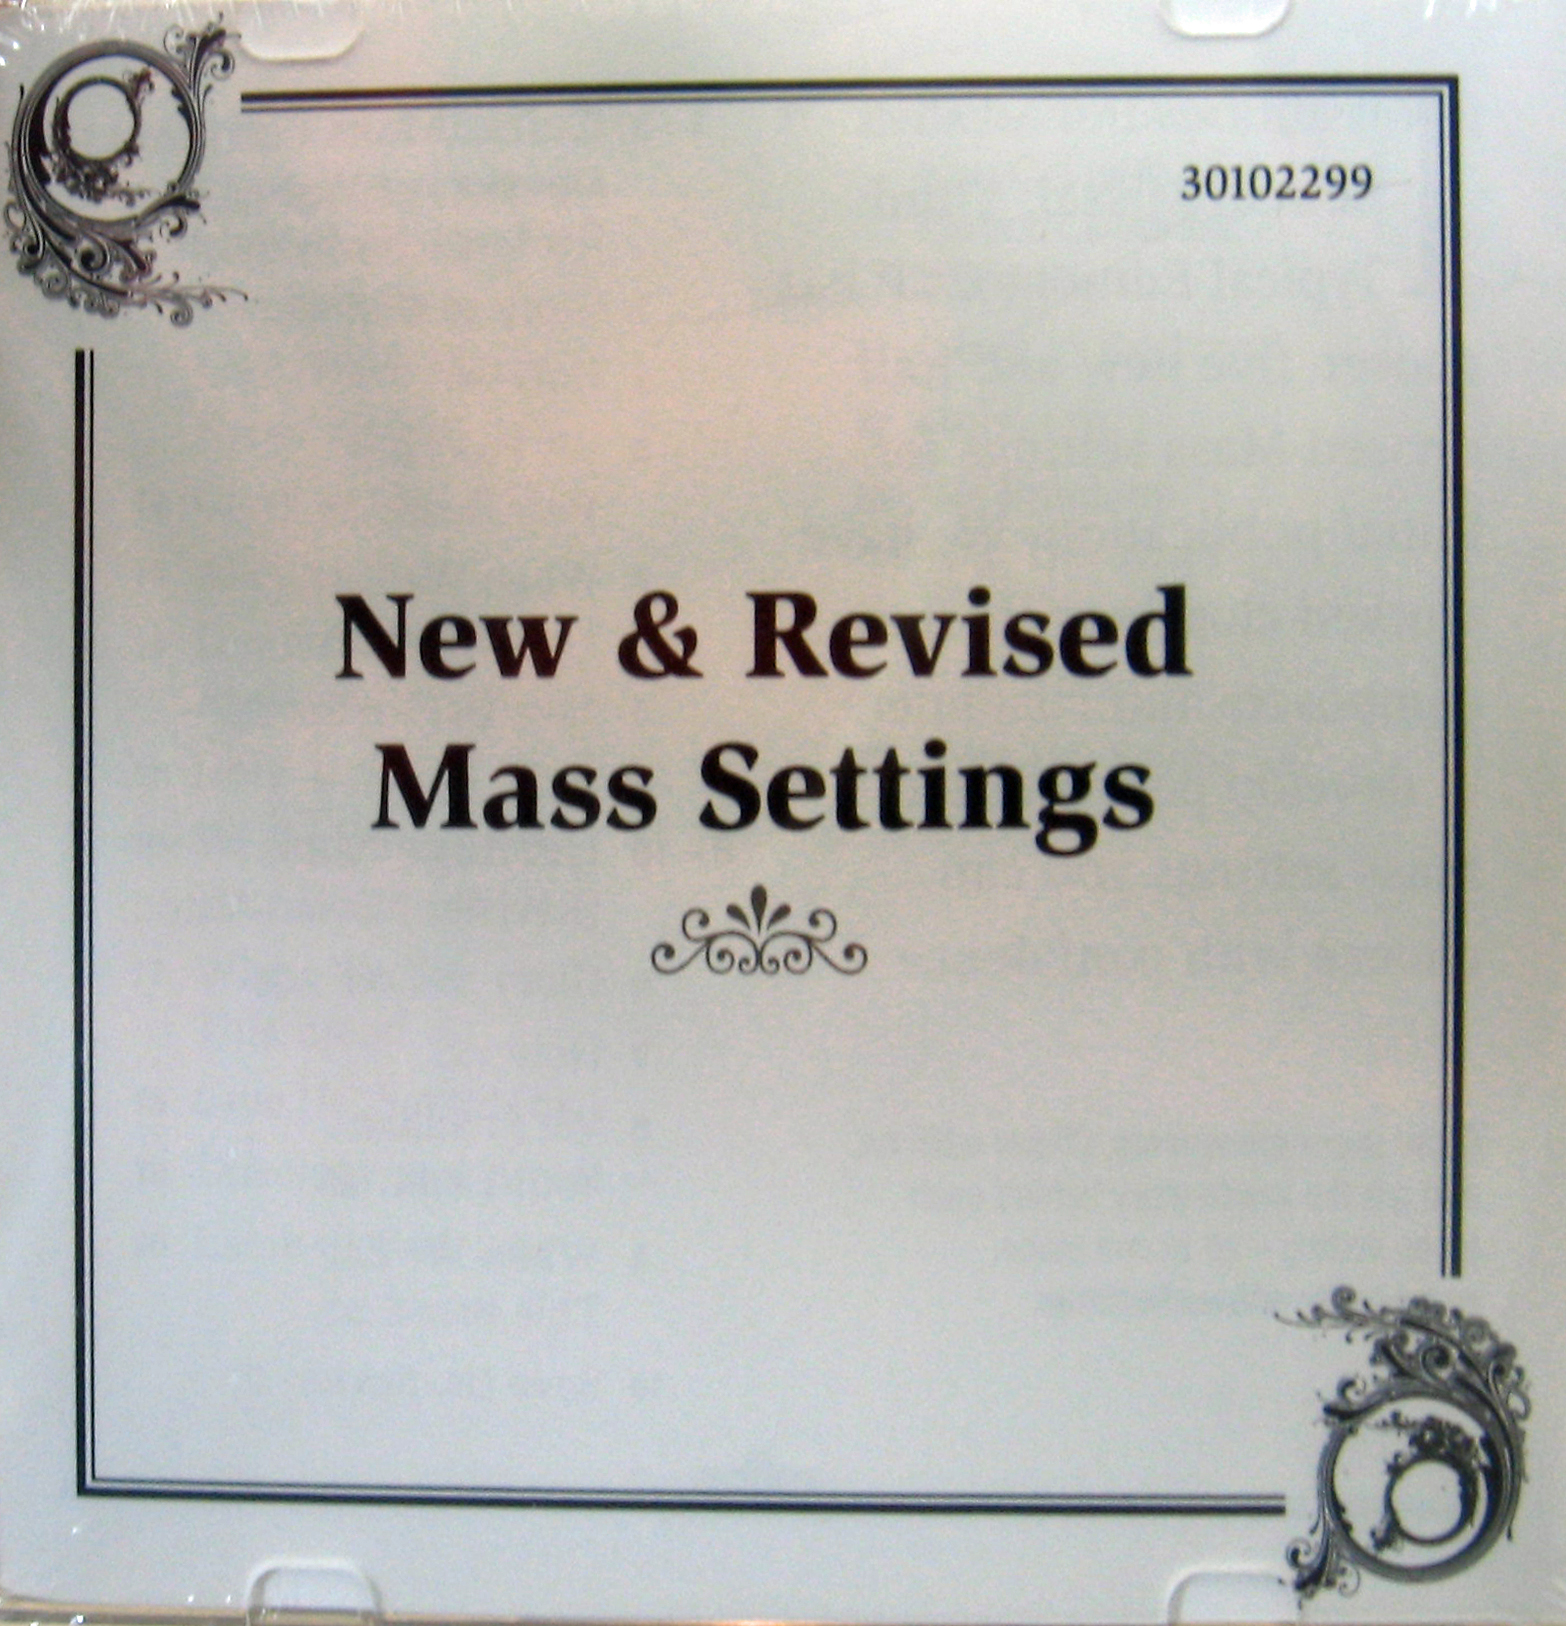 New and Revised Mass Settings CD by Oregon Catholic Press 65-30102299